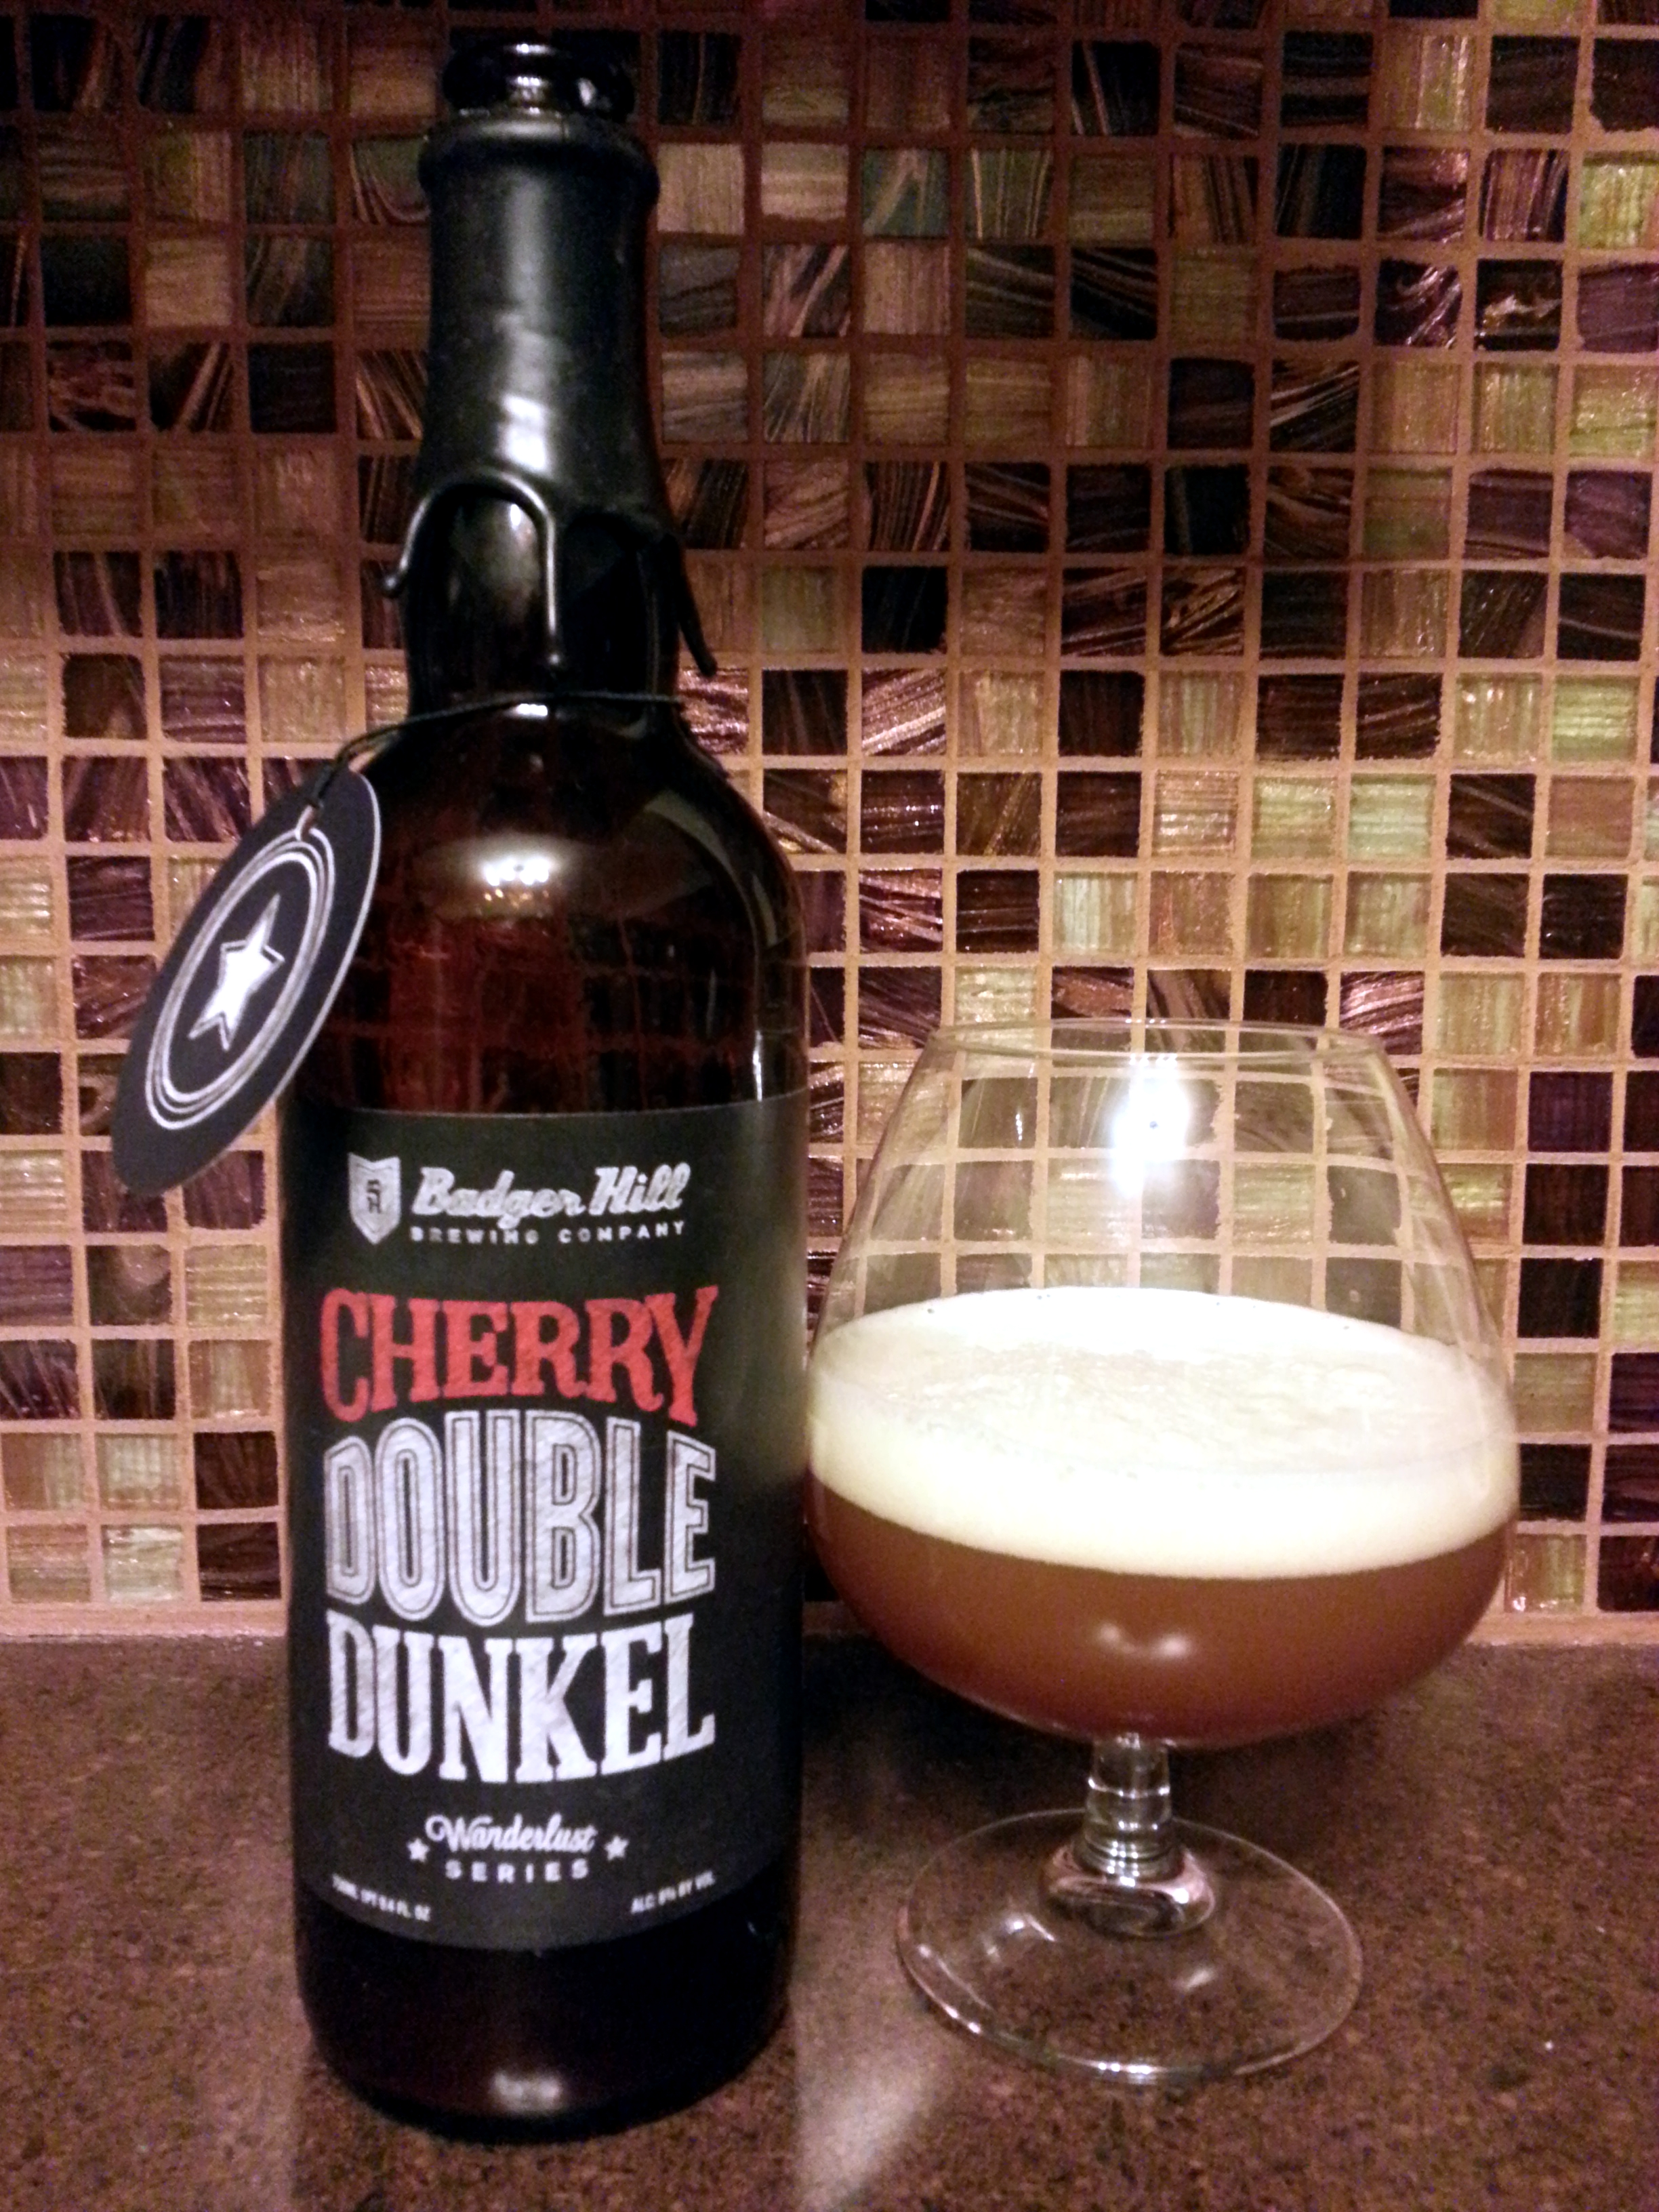 Cherry Double Dunkel